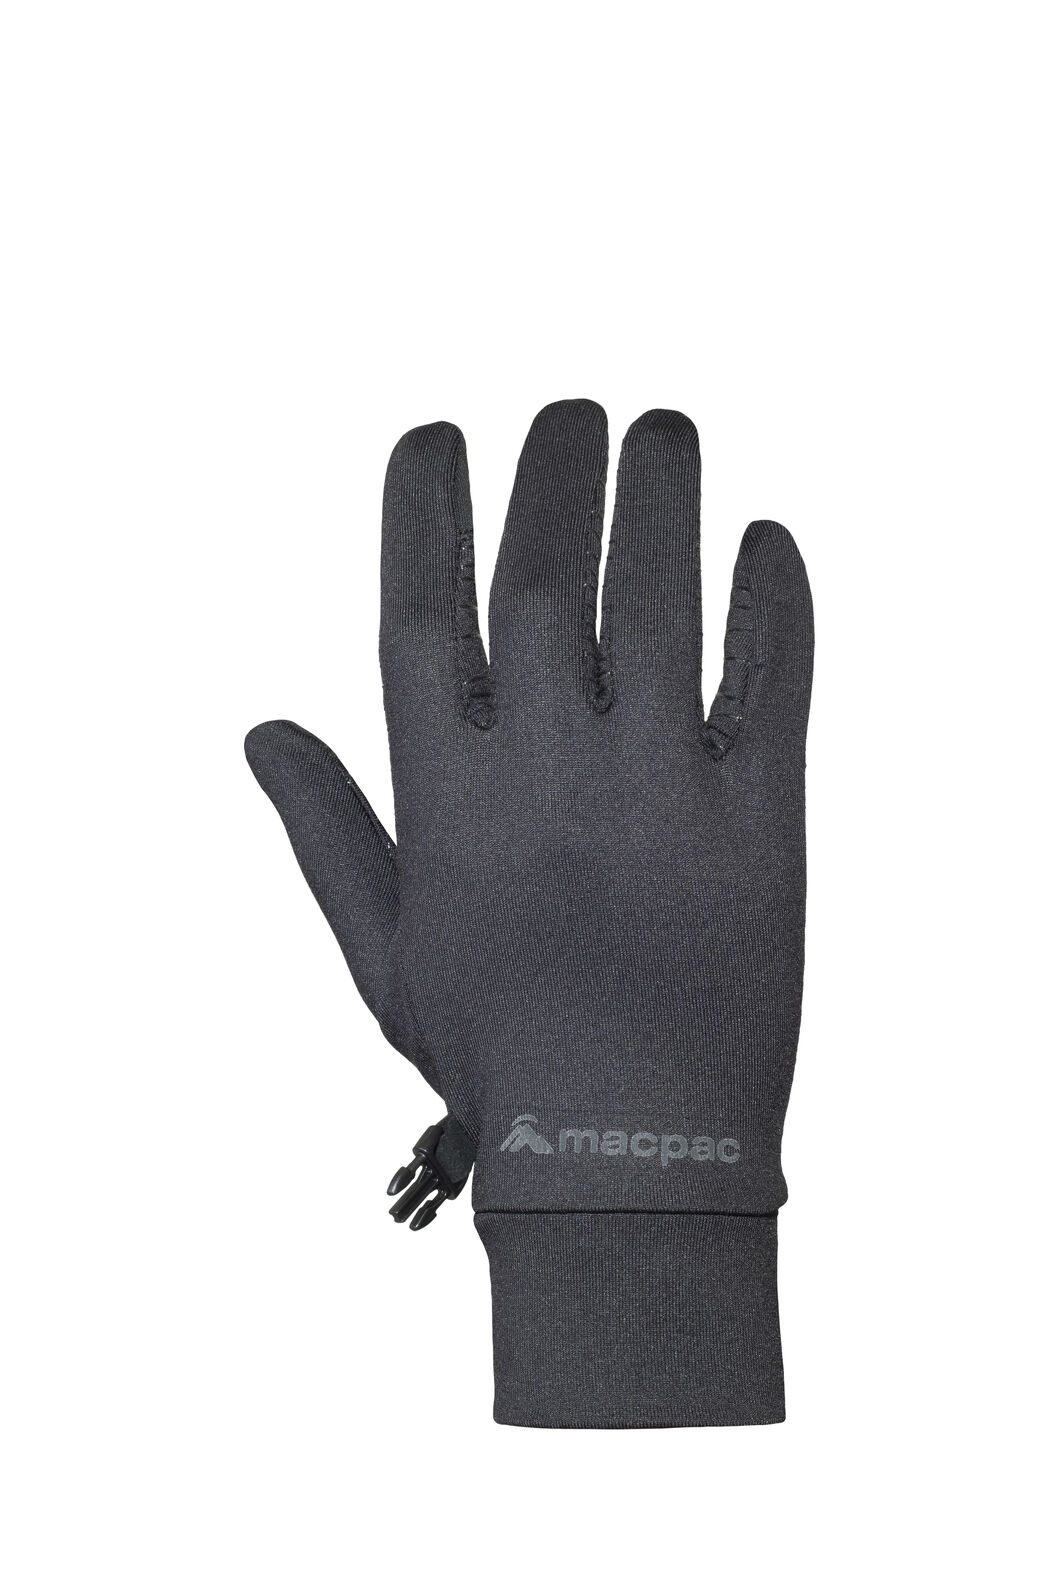 Macpac Performance Gloves, Black, hi-res